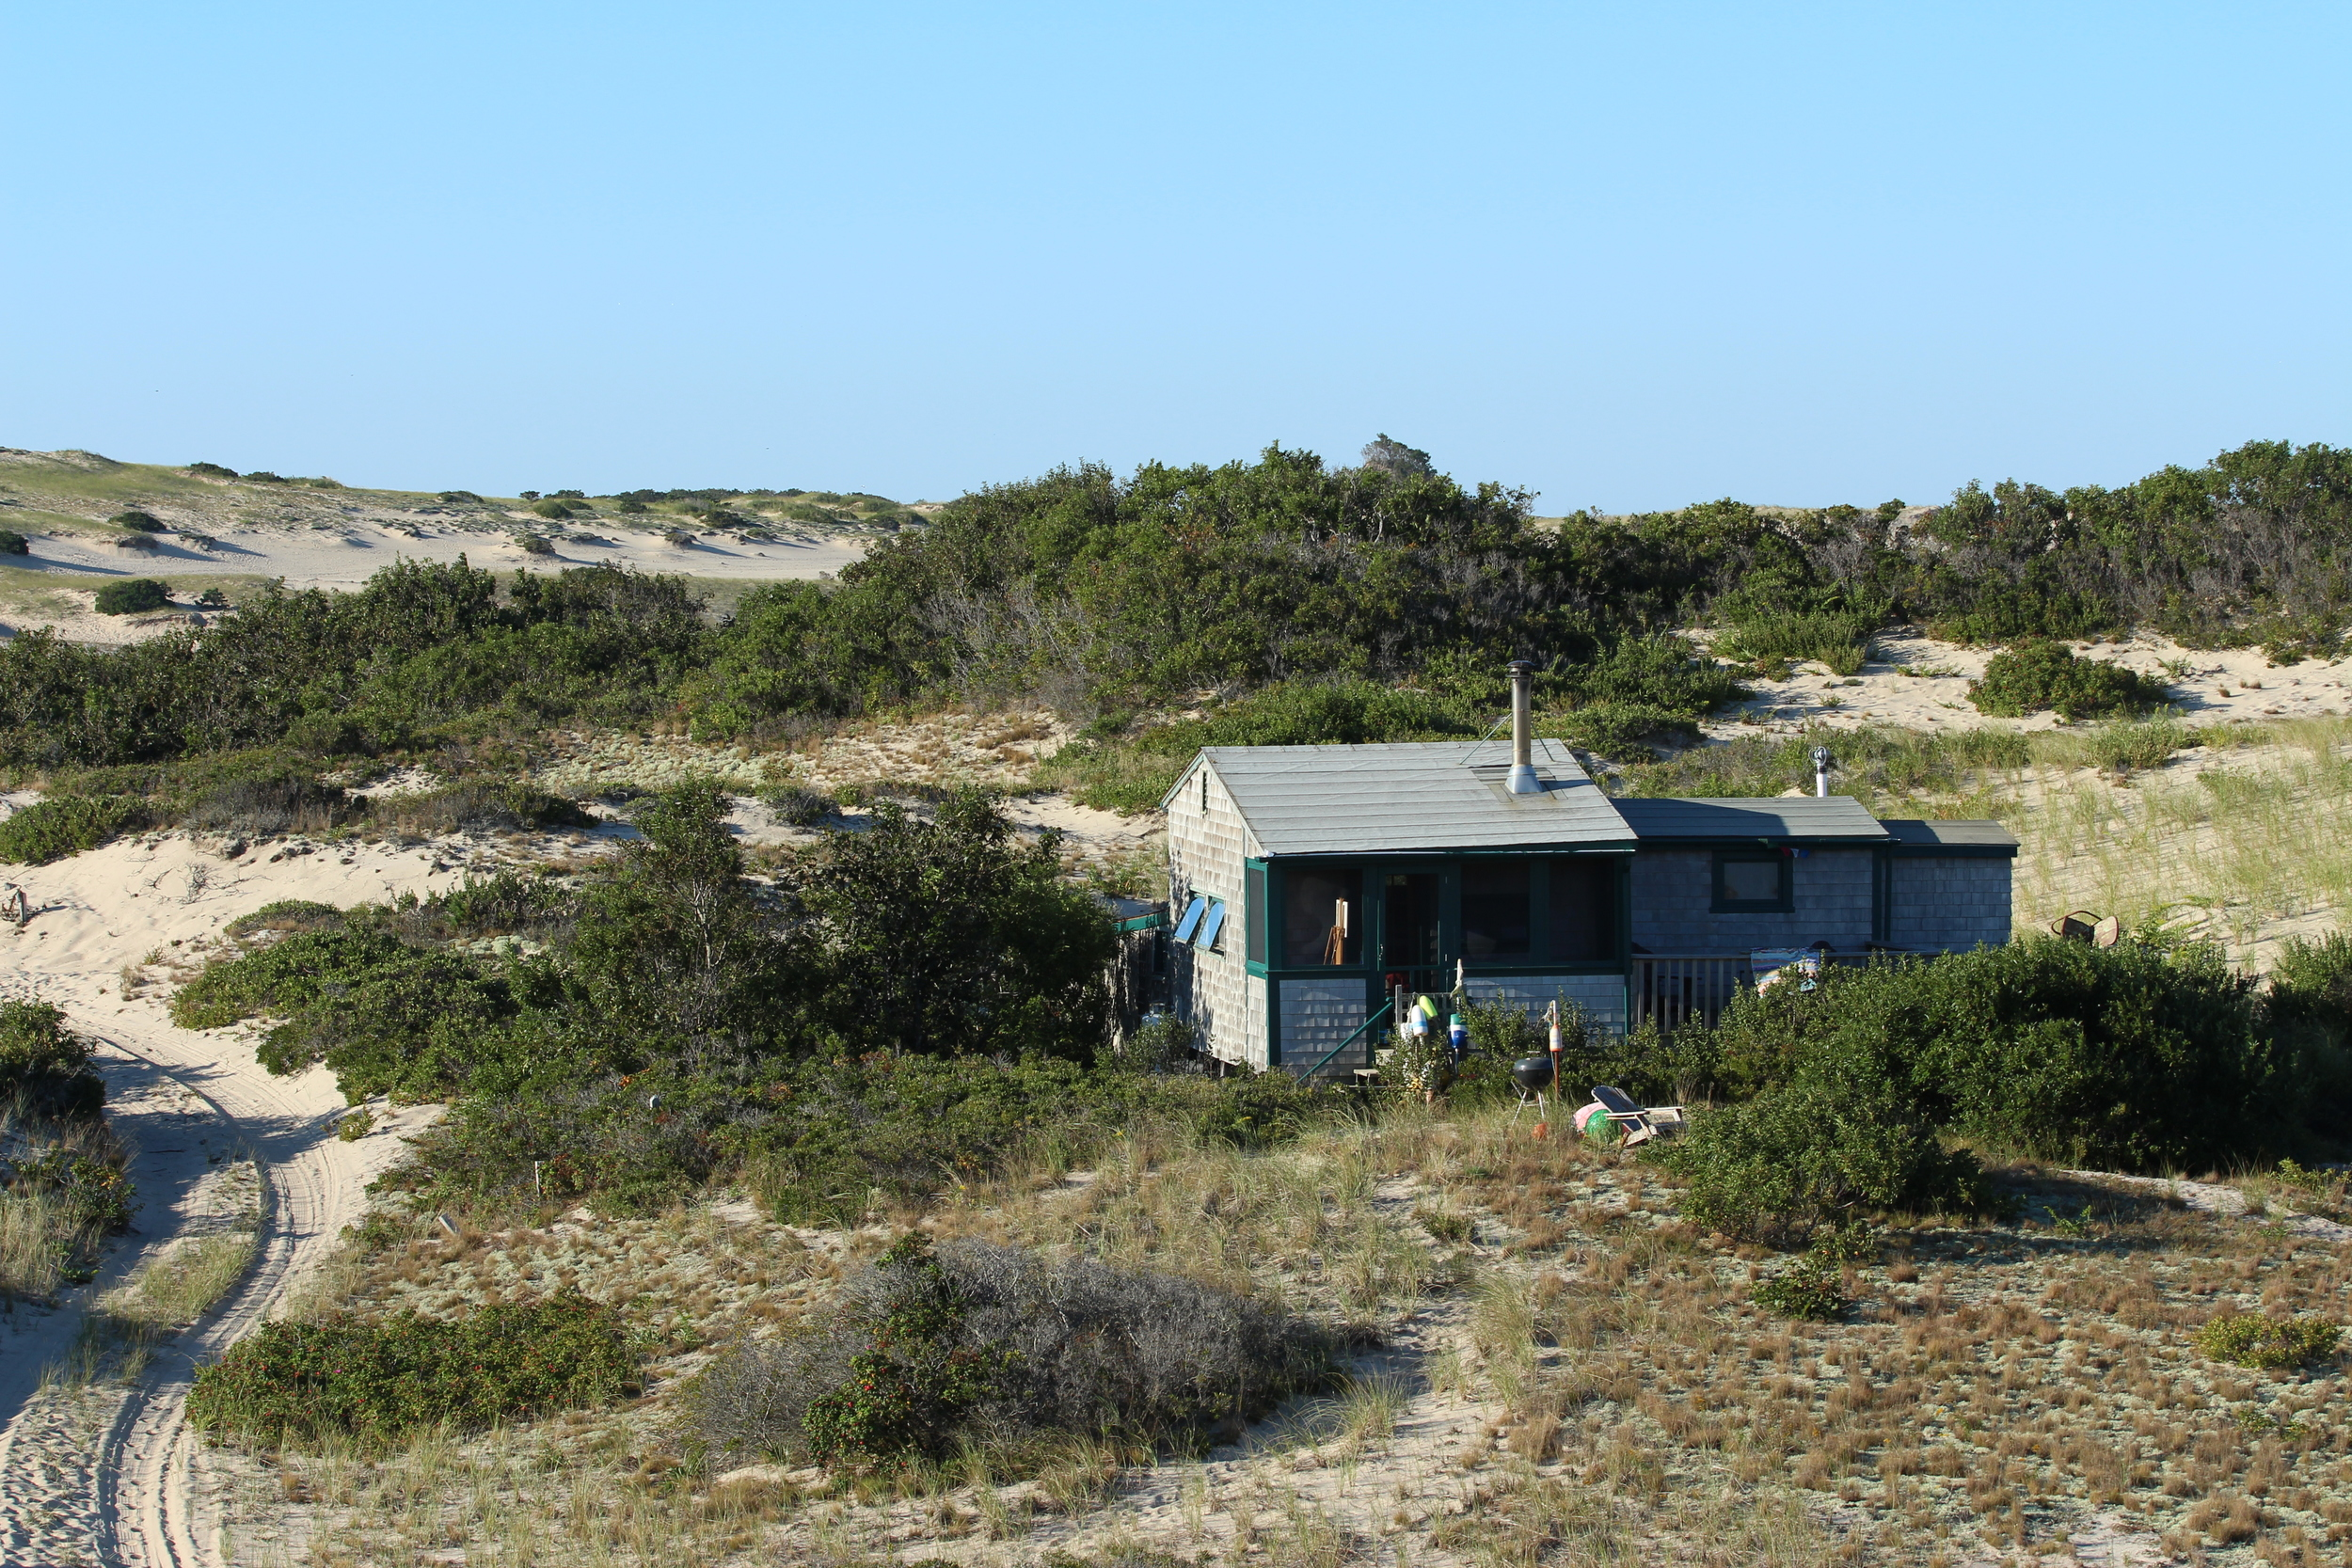 Good view of the Fowler Shack in all its glory. To the left of the shack is the makeshift sand road that Chip used to drive me and my stuff out in his truck. After this memorable New England winter many of the dune roadways had to be re-established.